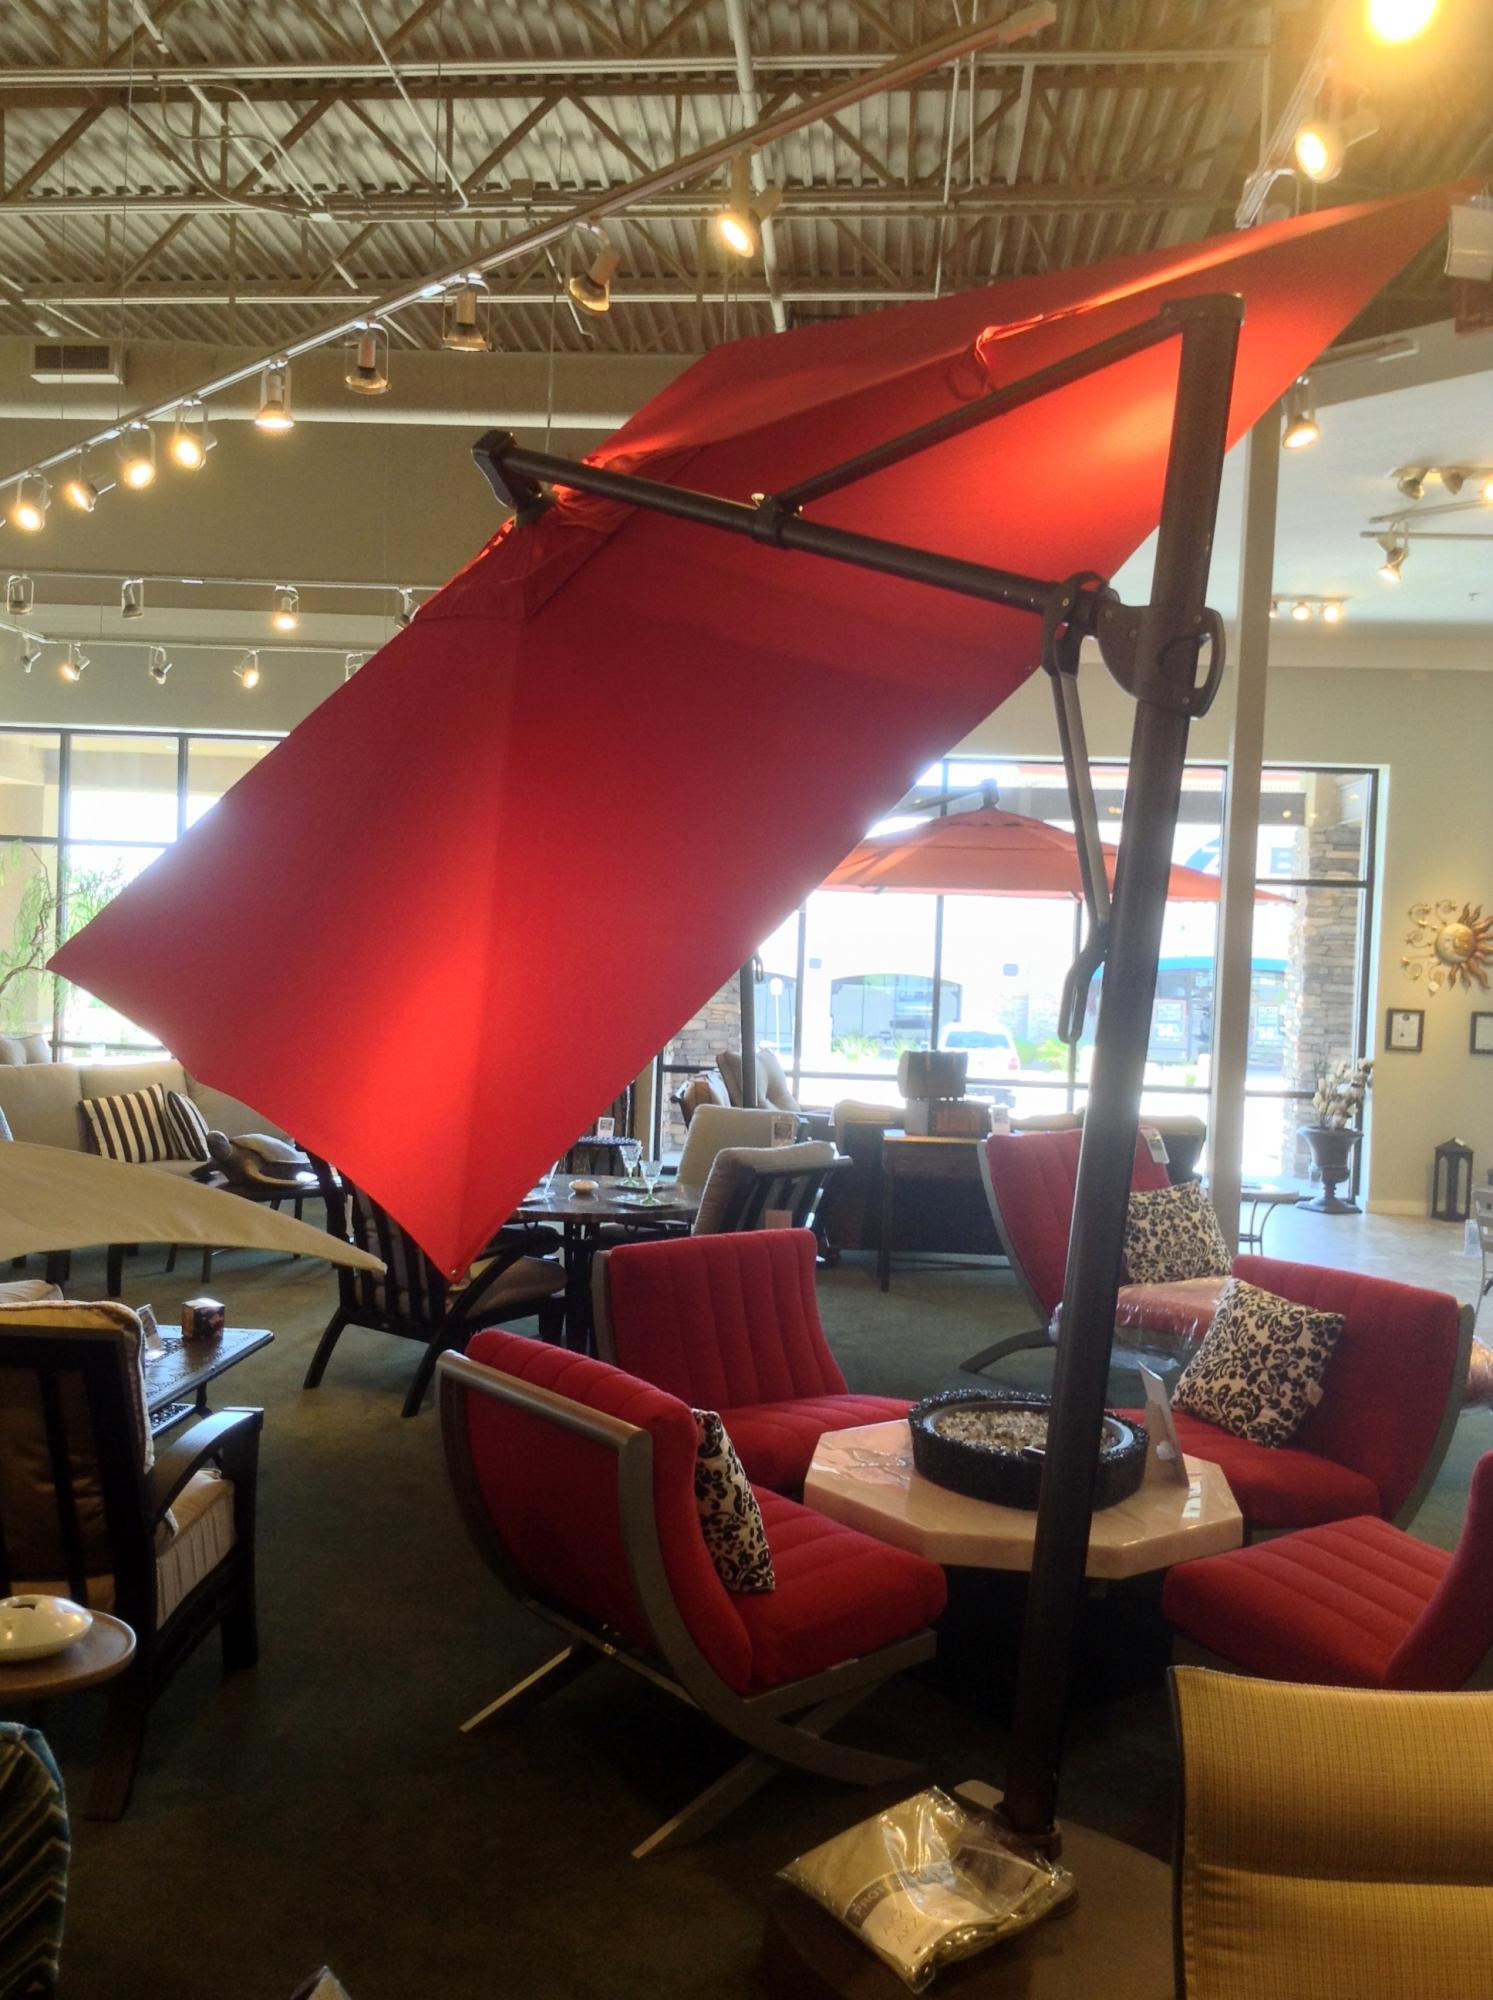 10 Ft. Square Cantilever Umbrella Tilted At 36 Degrees